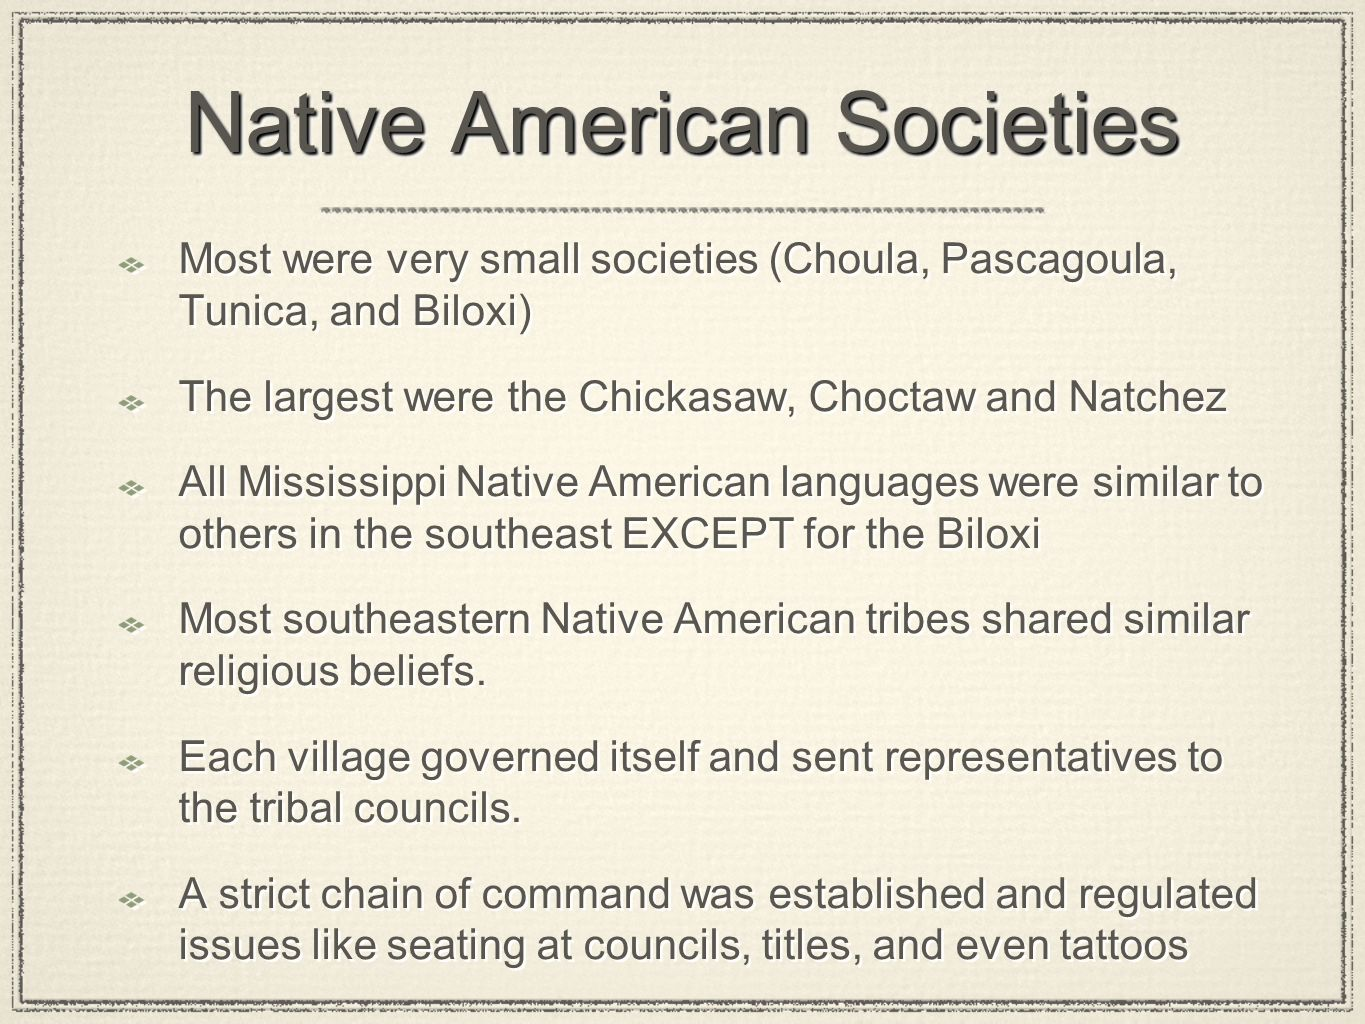 Native American Societies Most were very small societies (Choula, Pascagoula, Tunica, and Biloxi) The largest were the Chickasaw, Choctaw and Natchez